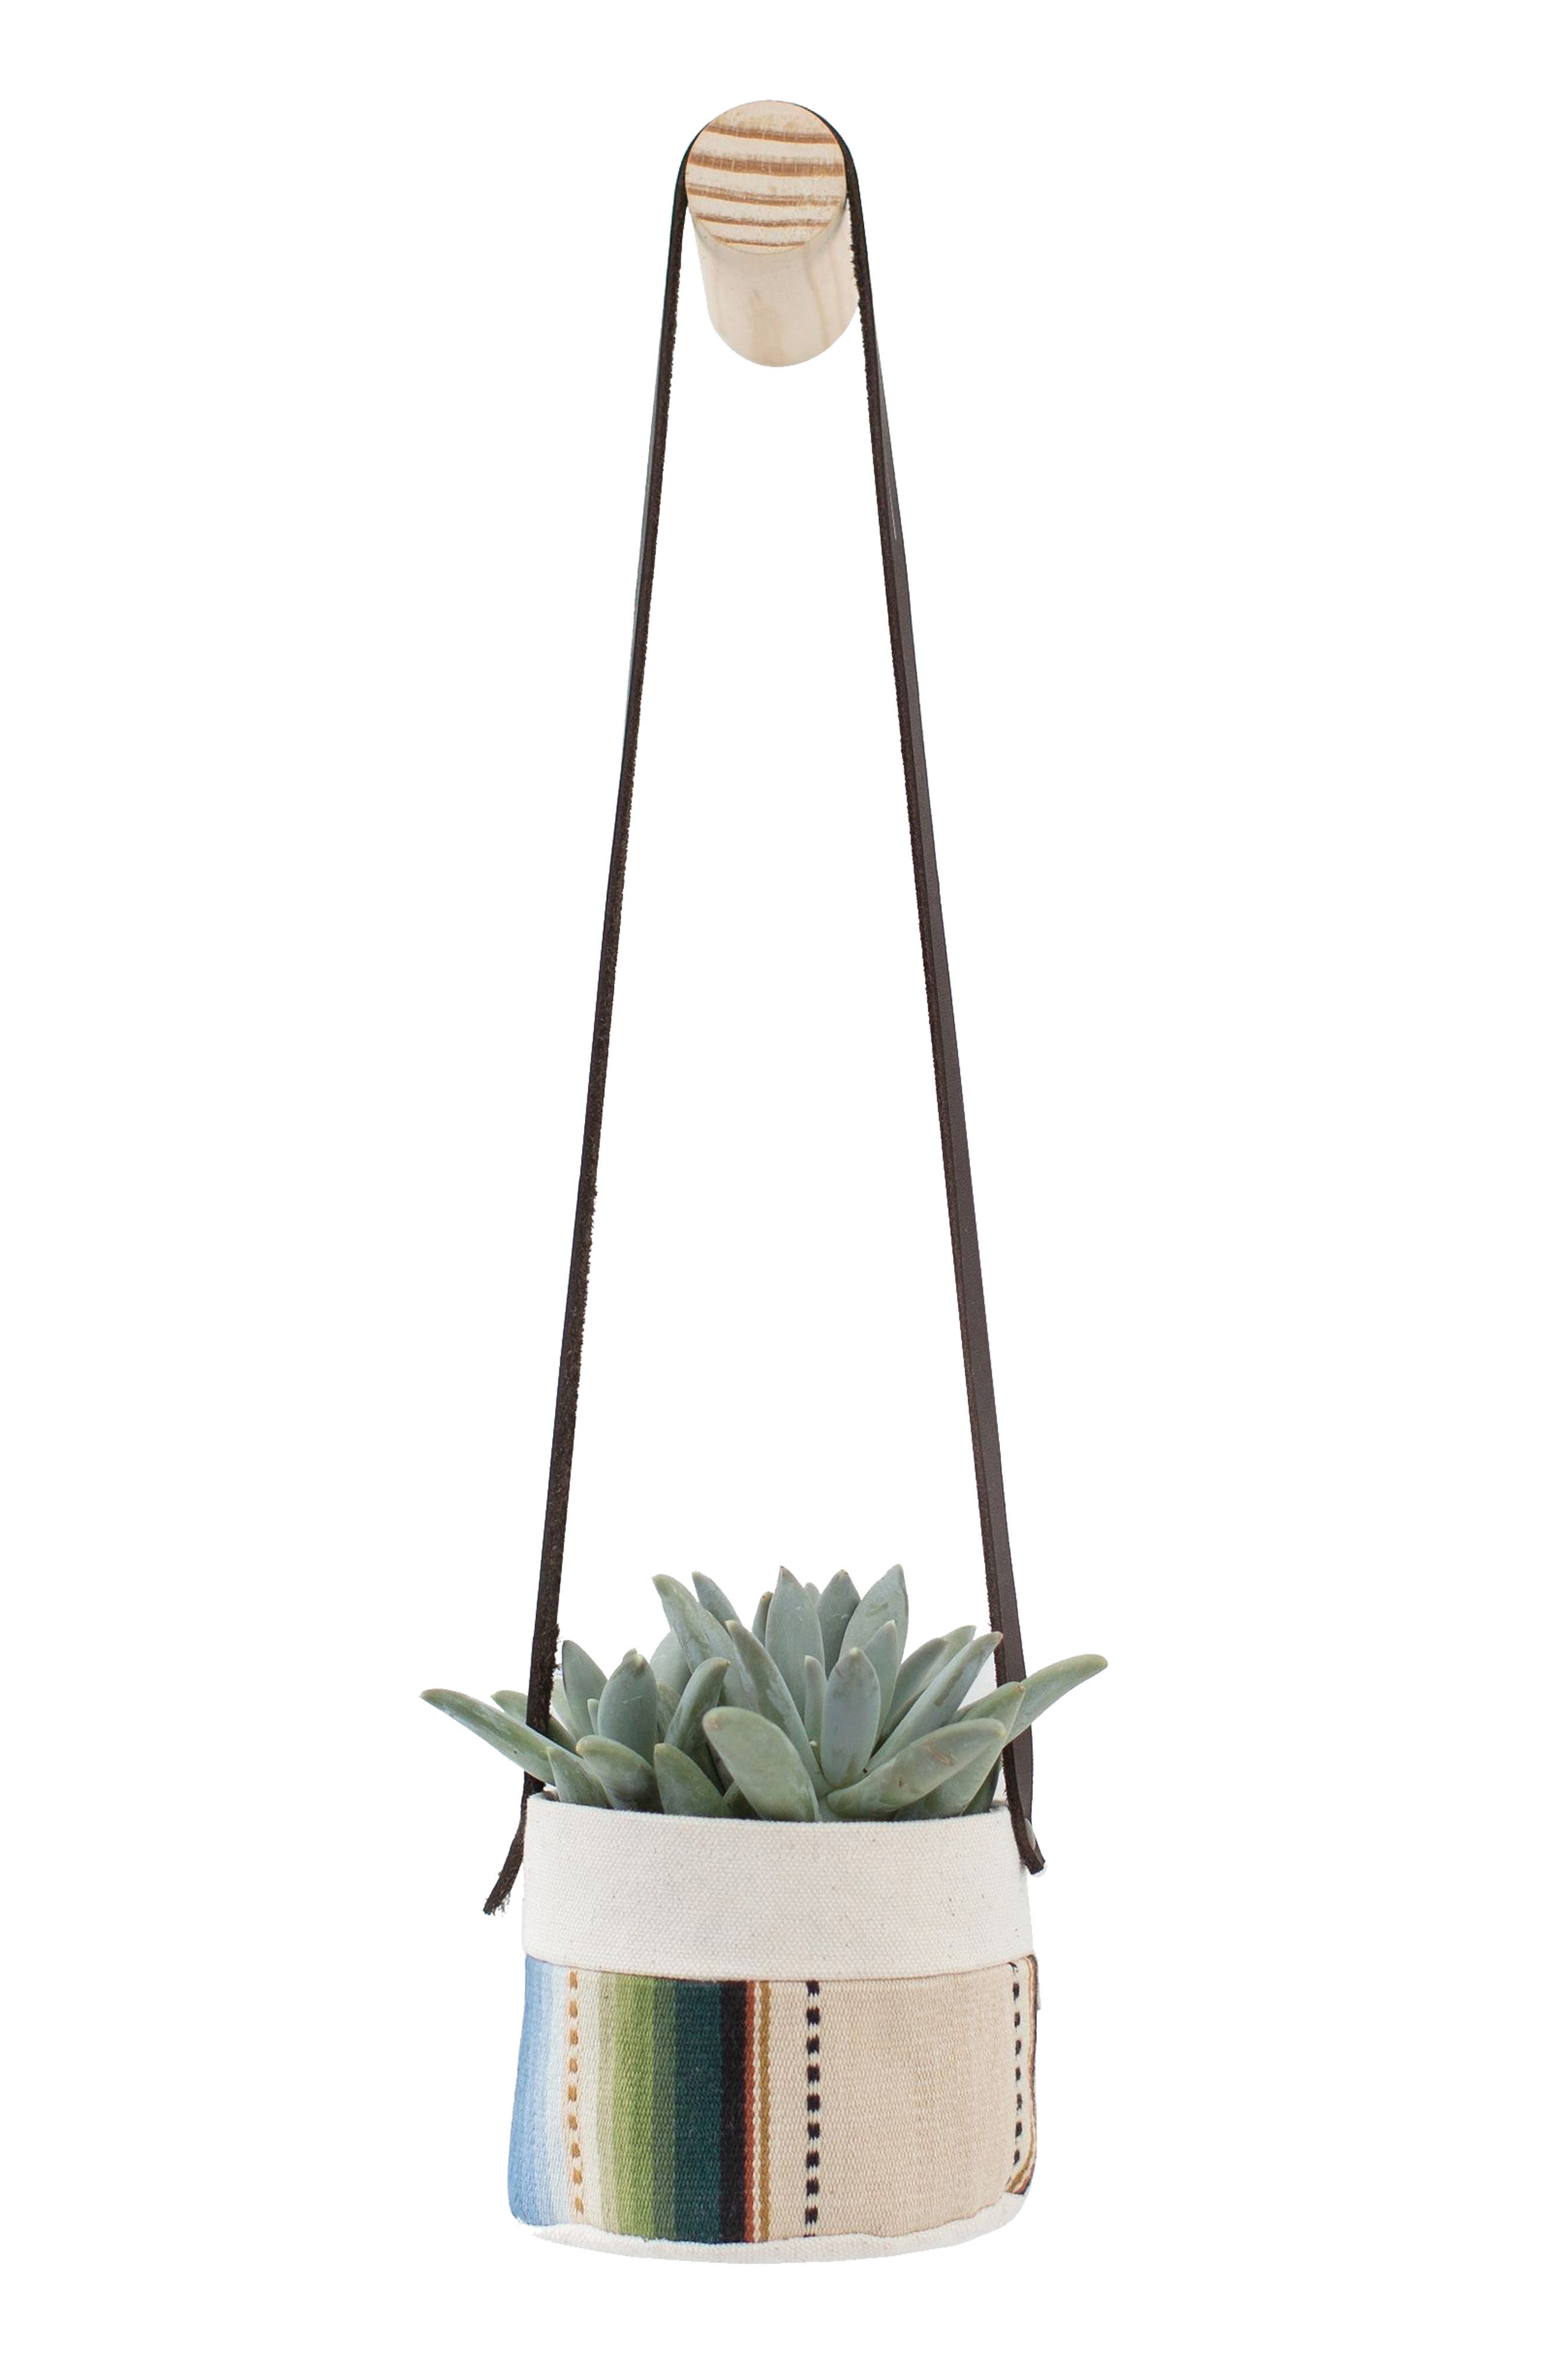 4-Inch Stripe Canvas Hanging Planter,                         Main,                         color, 250